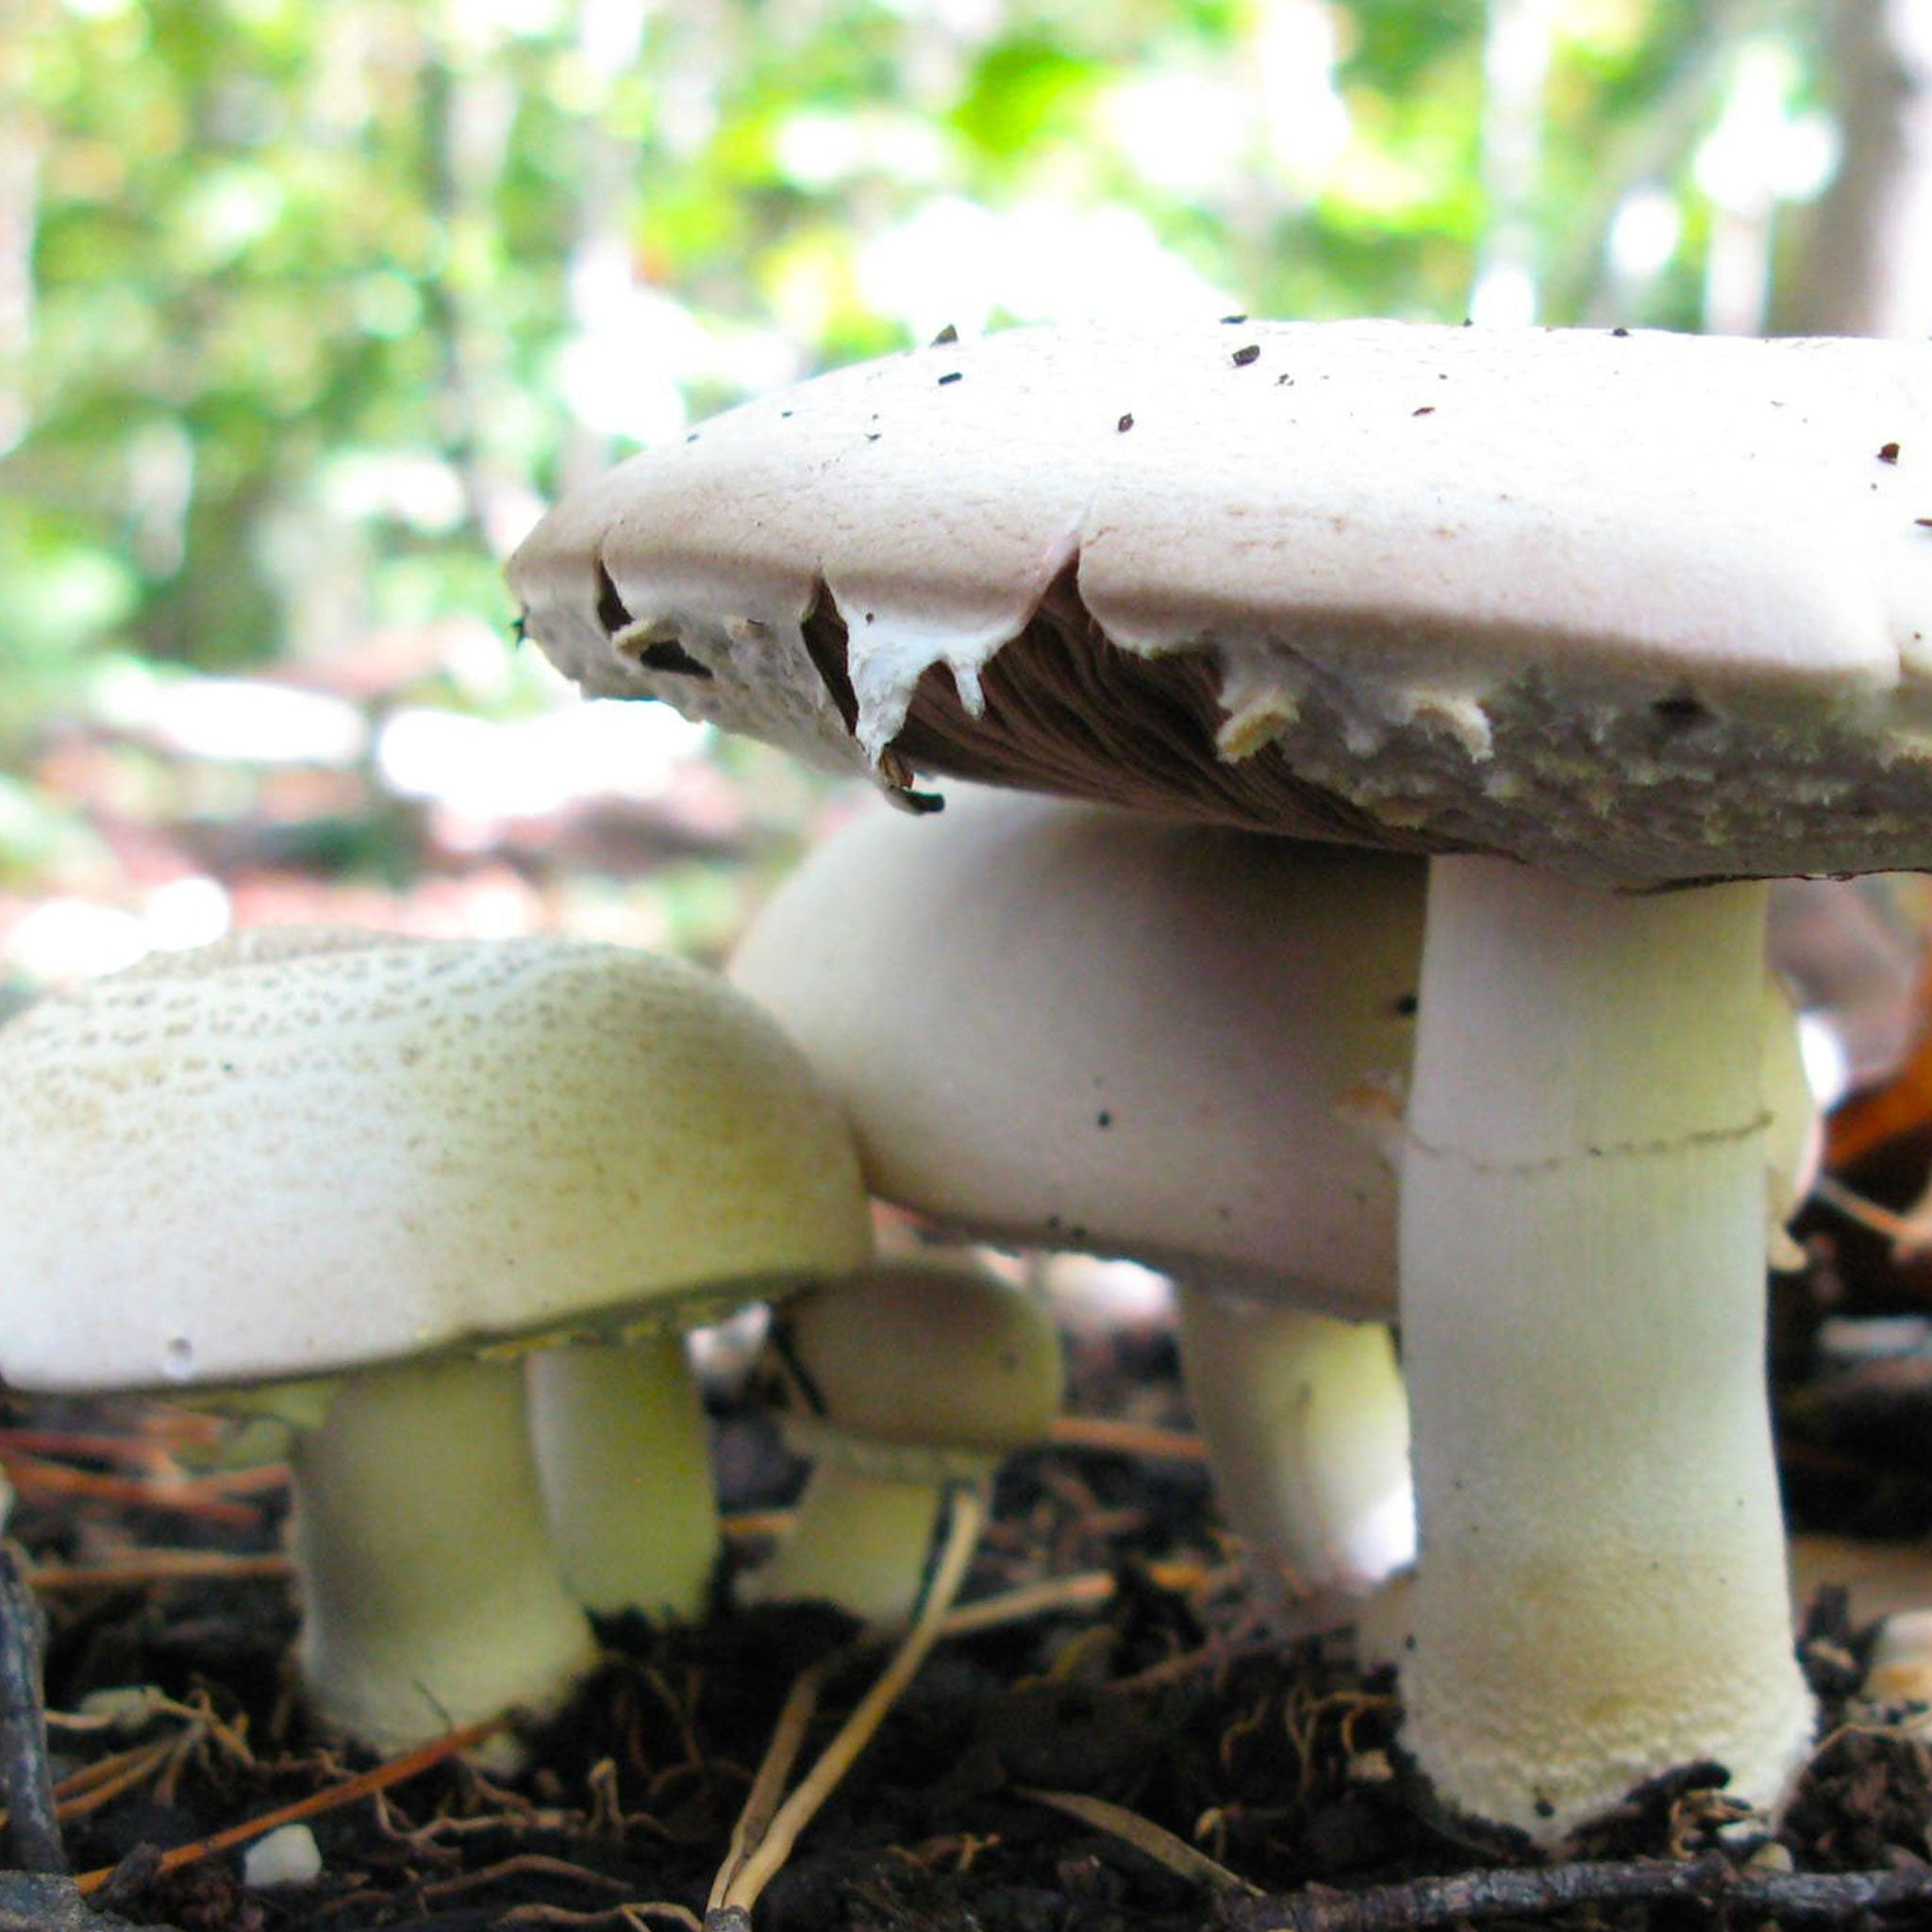 Diversifying Your Farm with Gourmet and Medicinal Mushrooms